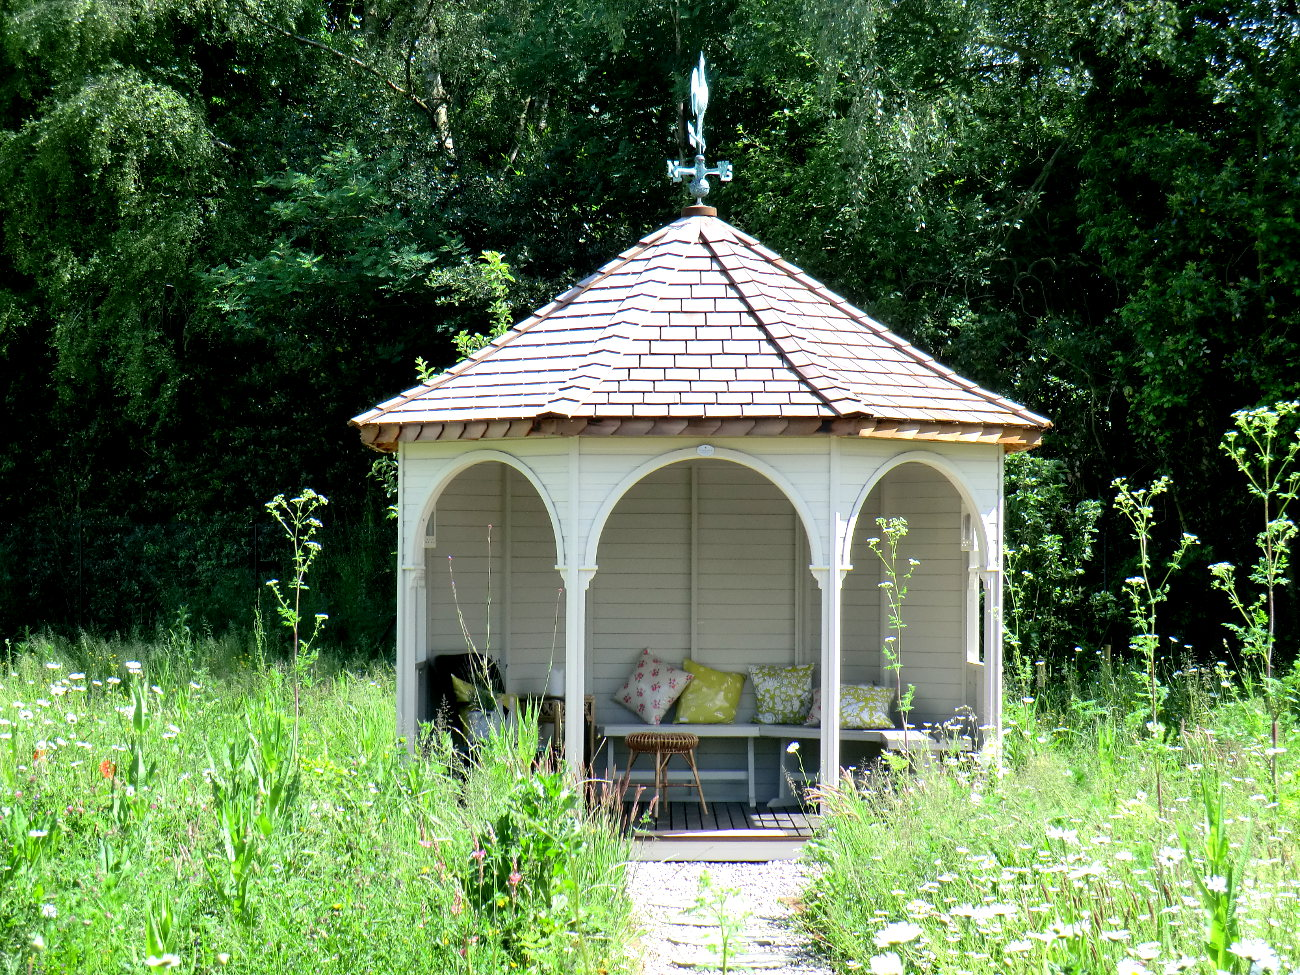 Get ready for summer with our garden gazebos